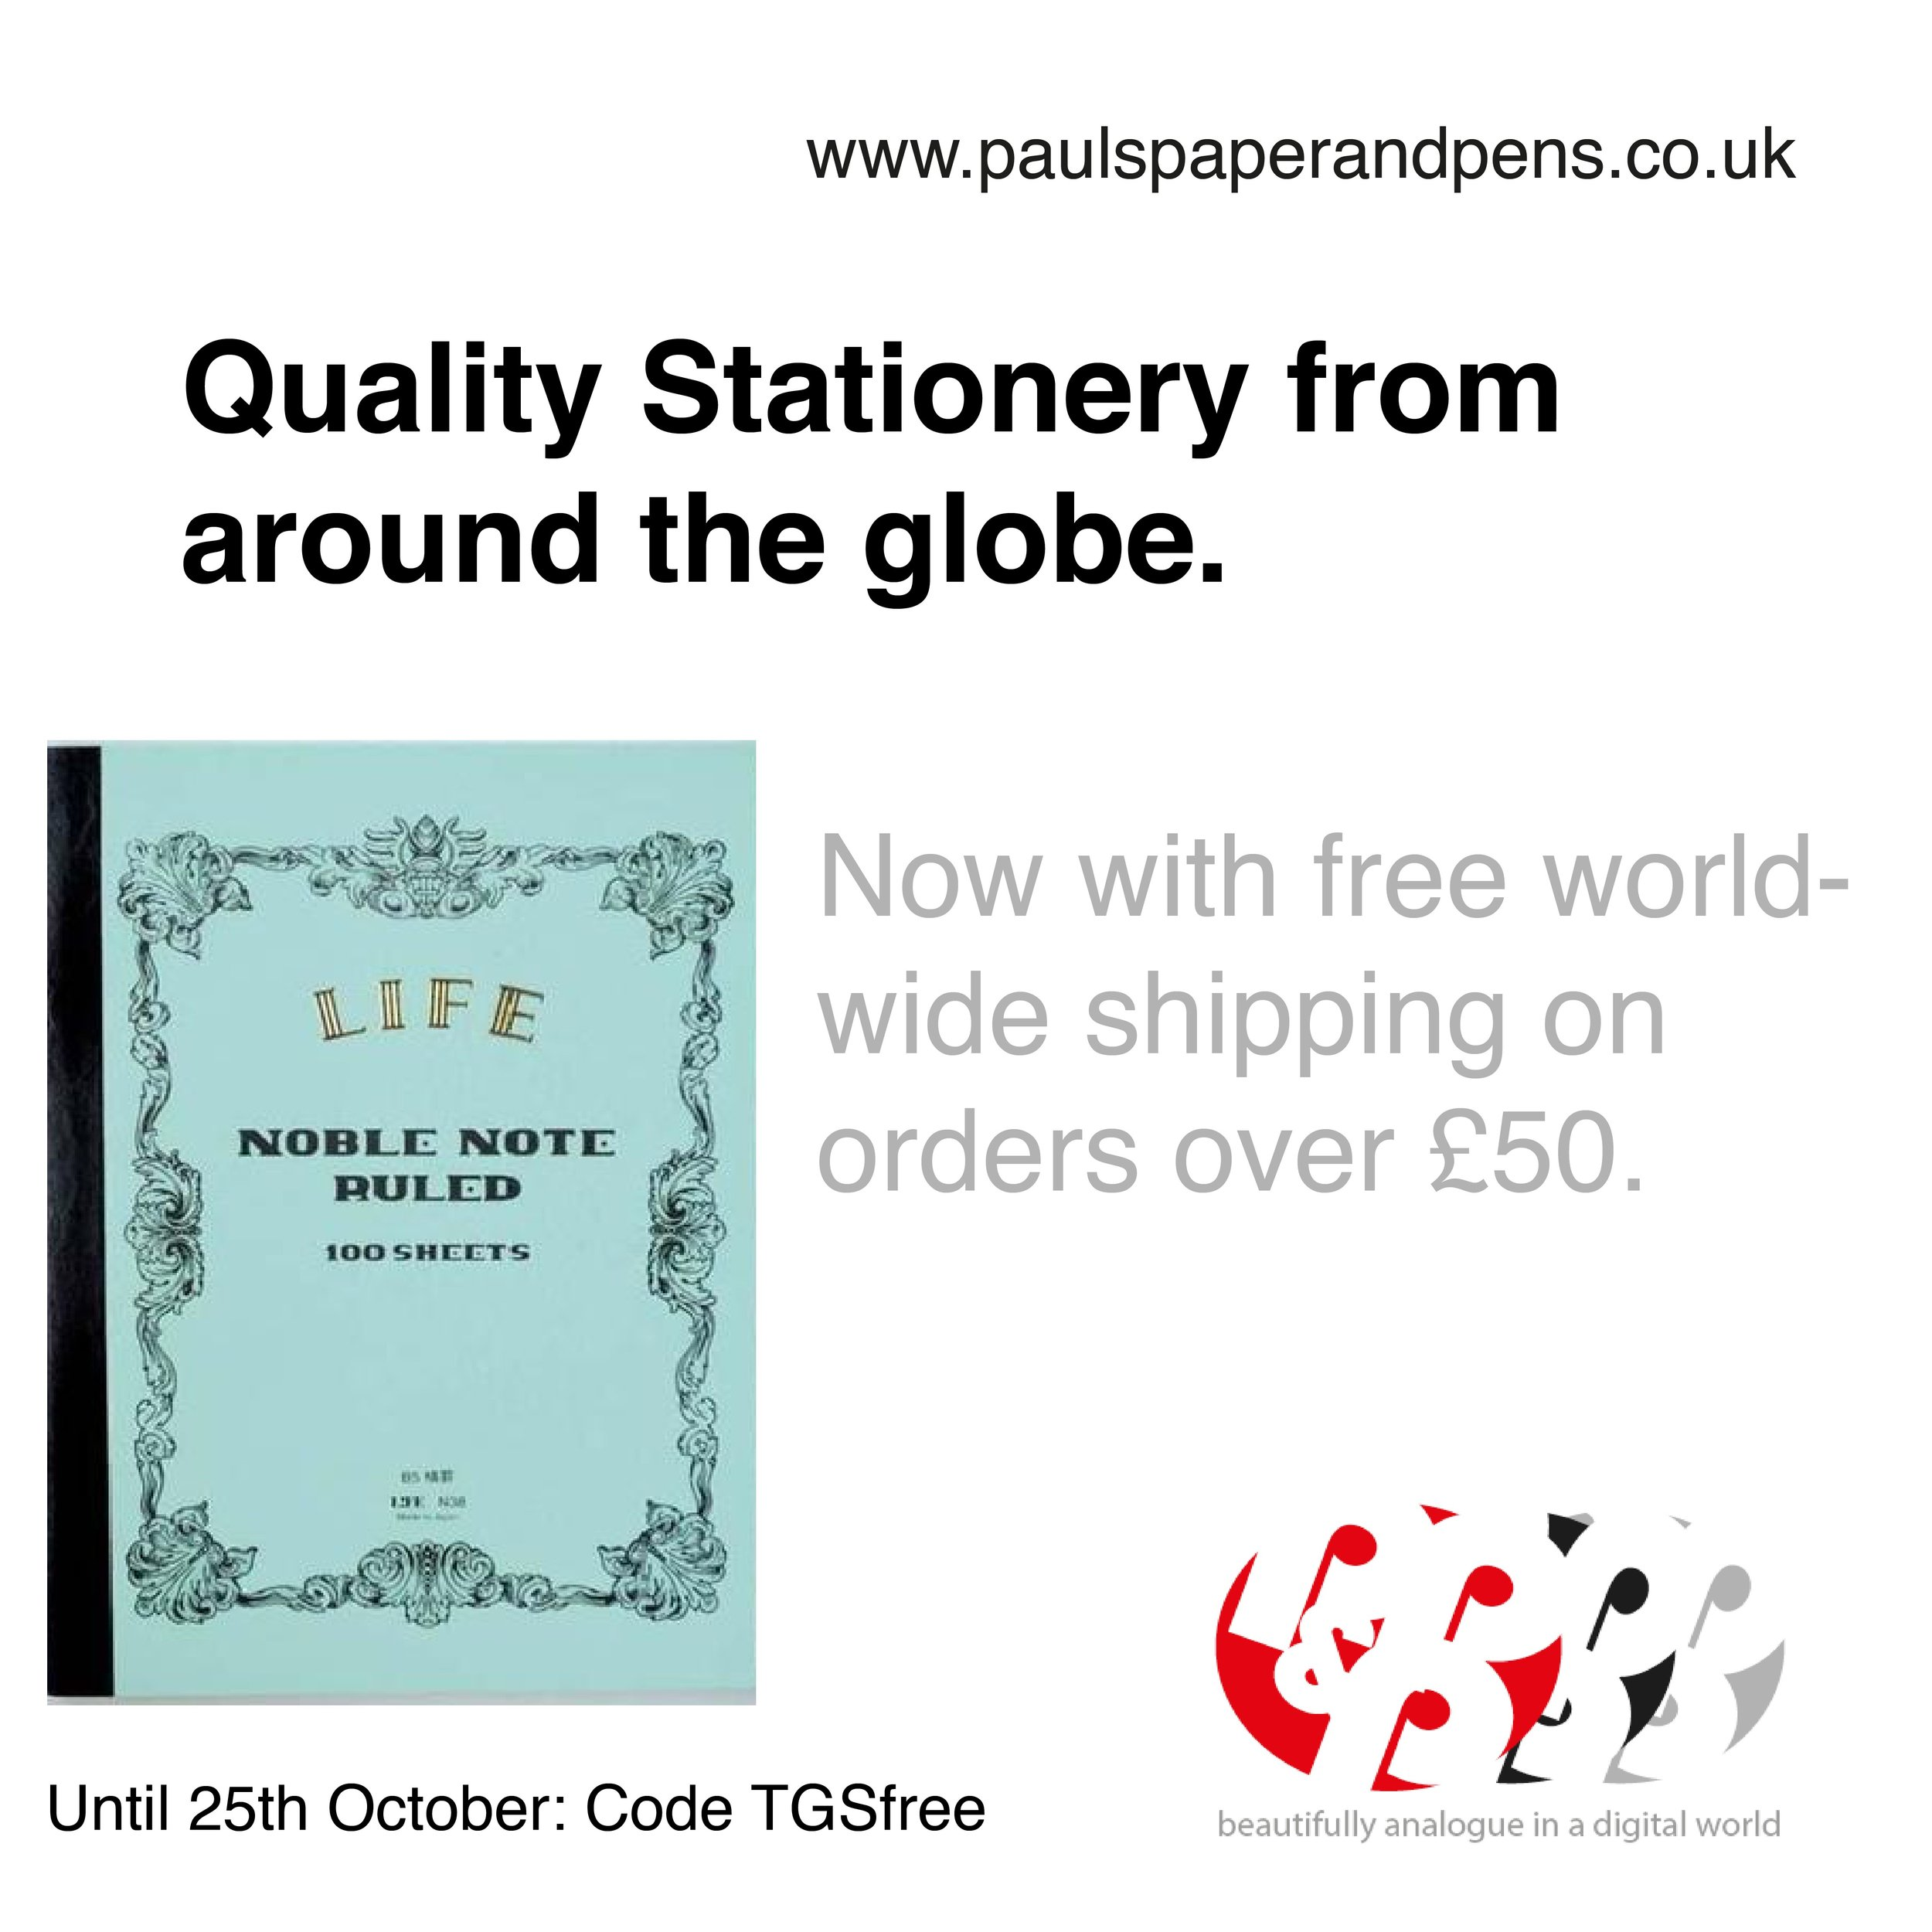 Paul's-Paper-Pens-Free-Shipping-Offer